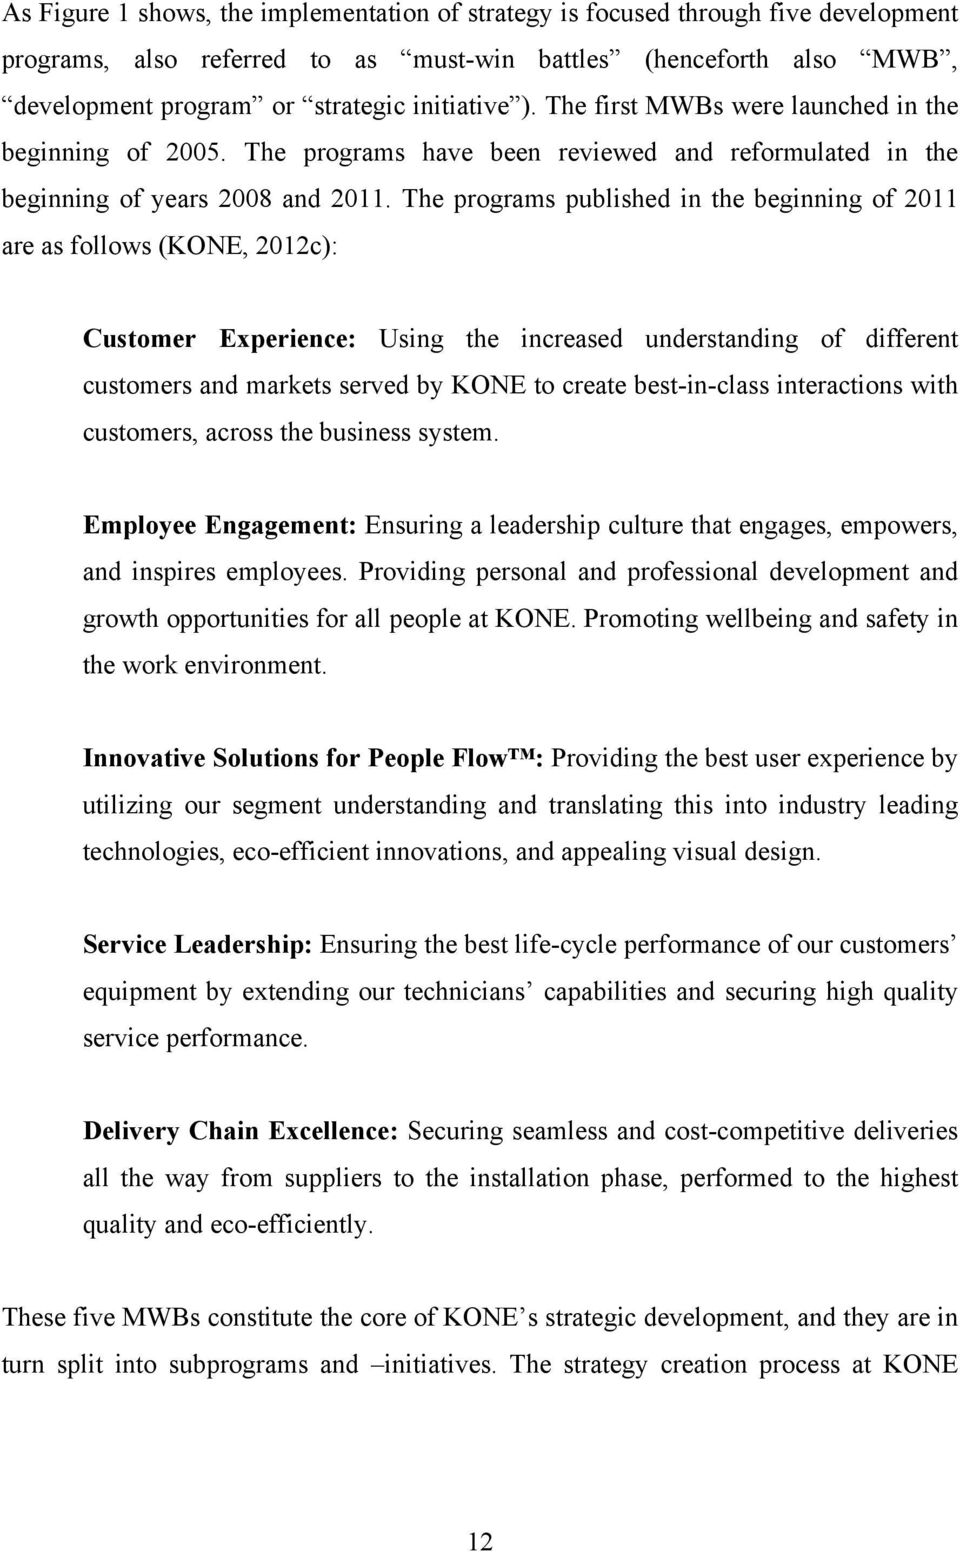 The programs published in the beginning of 2011 are as follows (KONE, 2012c): Customer Experience: Using the increased understanding of different customers and markets served by KONE to create